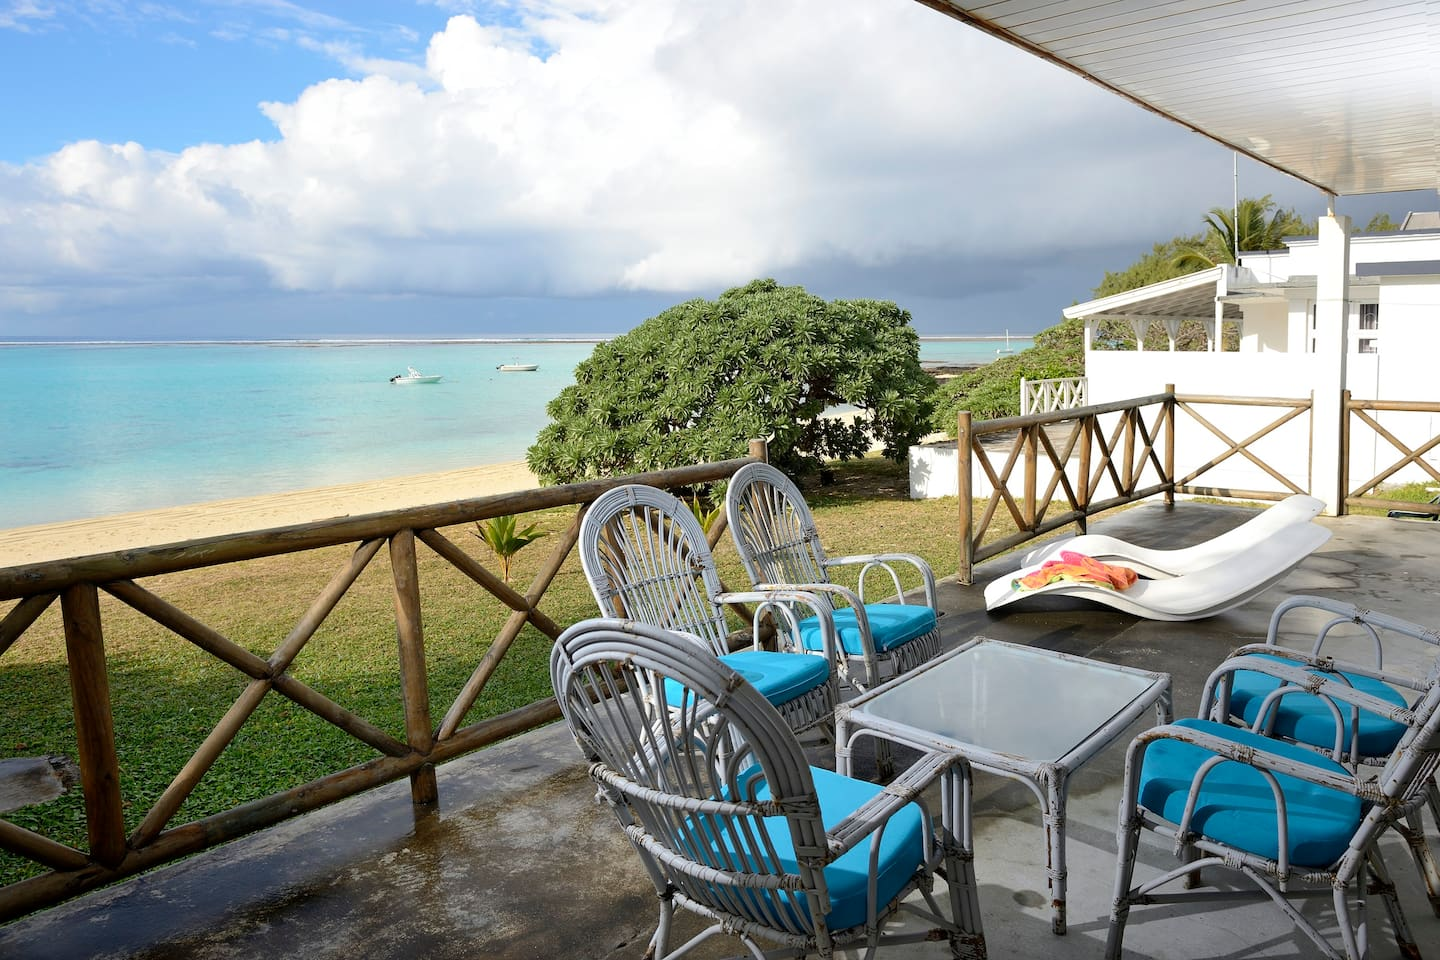 Pleasant view from the beach front veranda